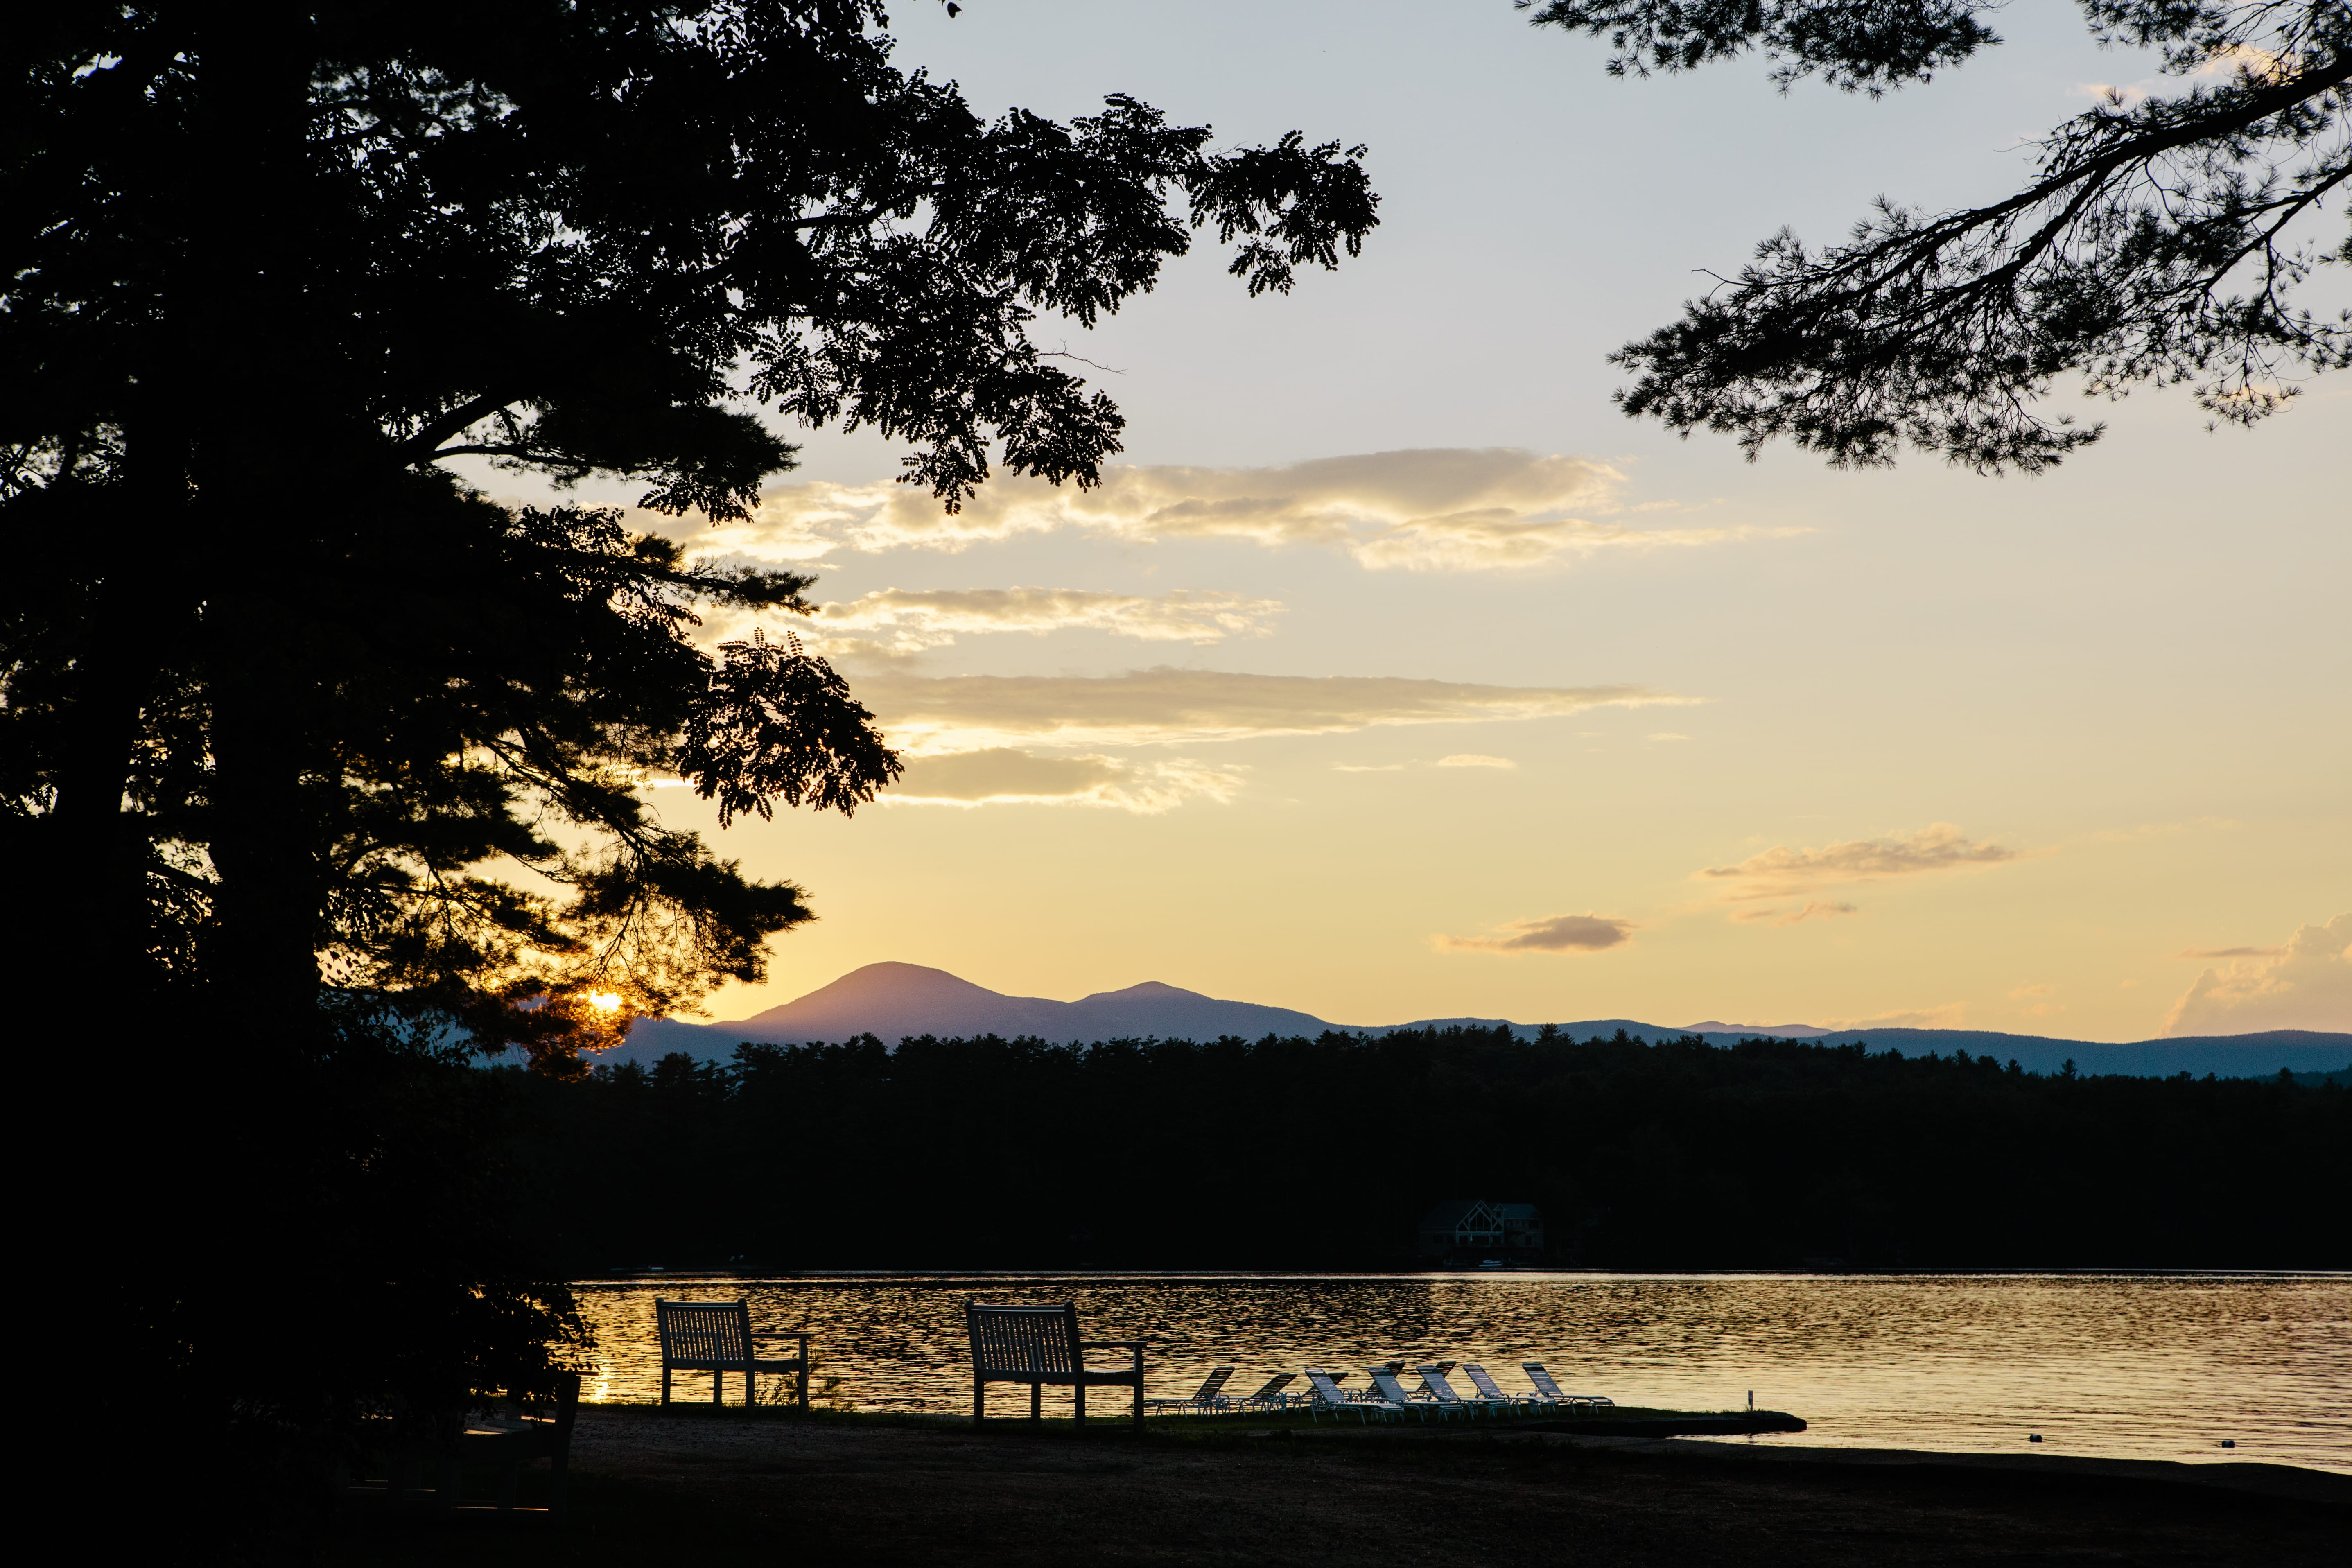 Image of the lake at sunset with two benches and lawn chairs